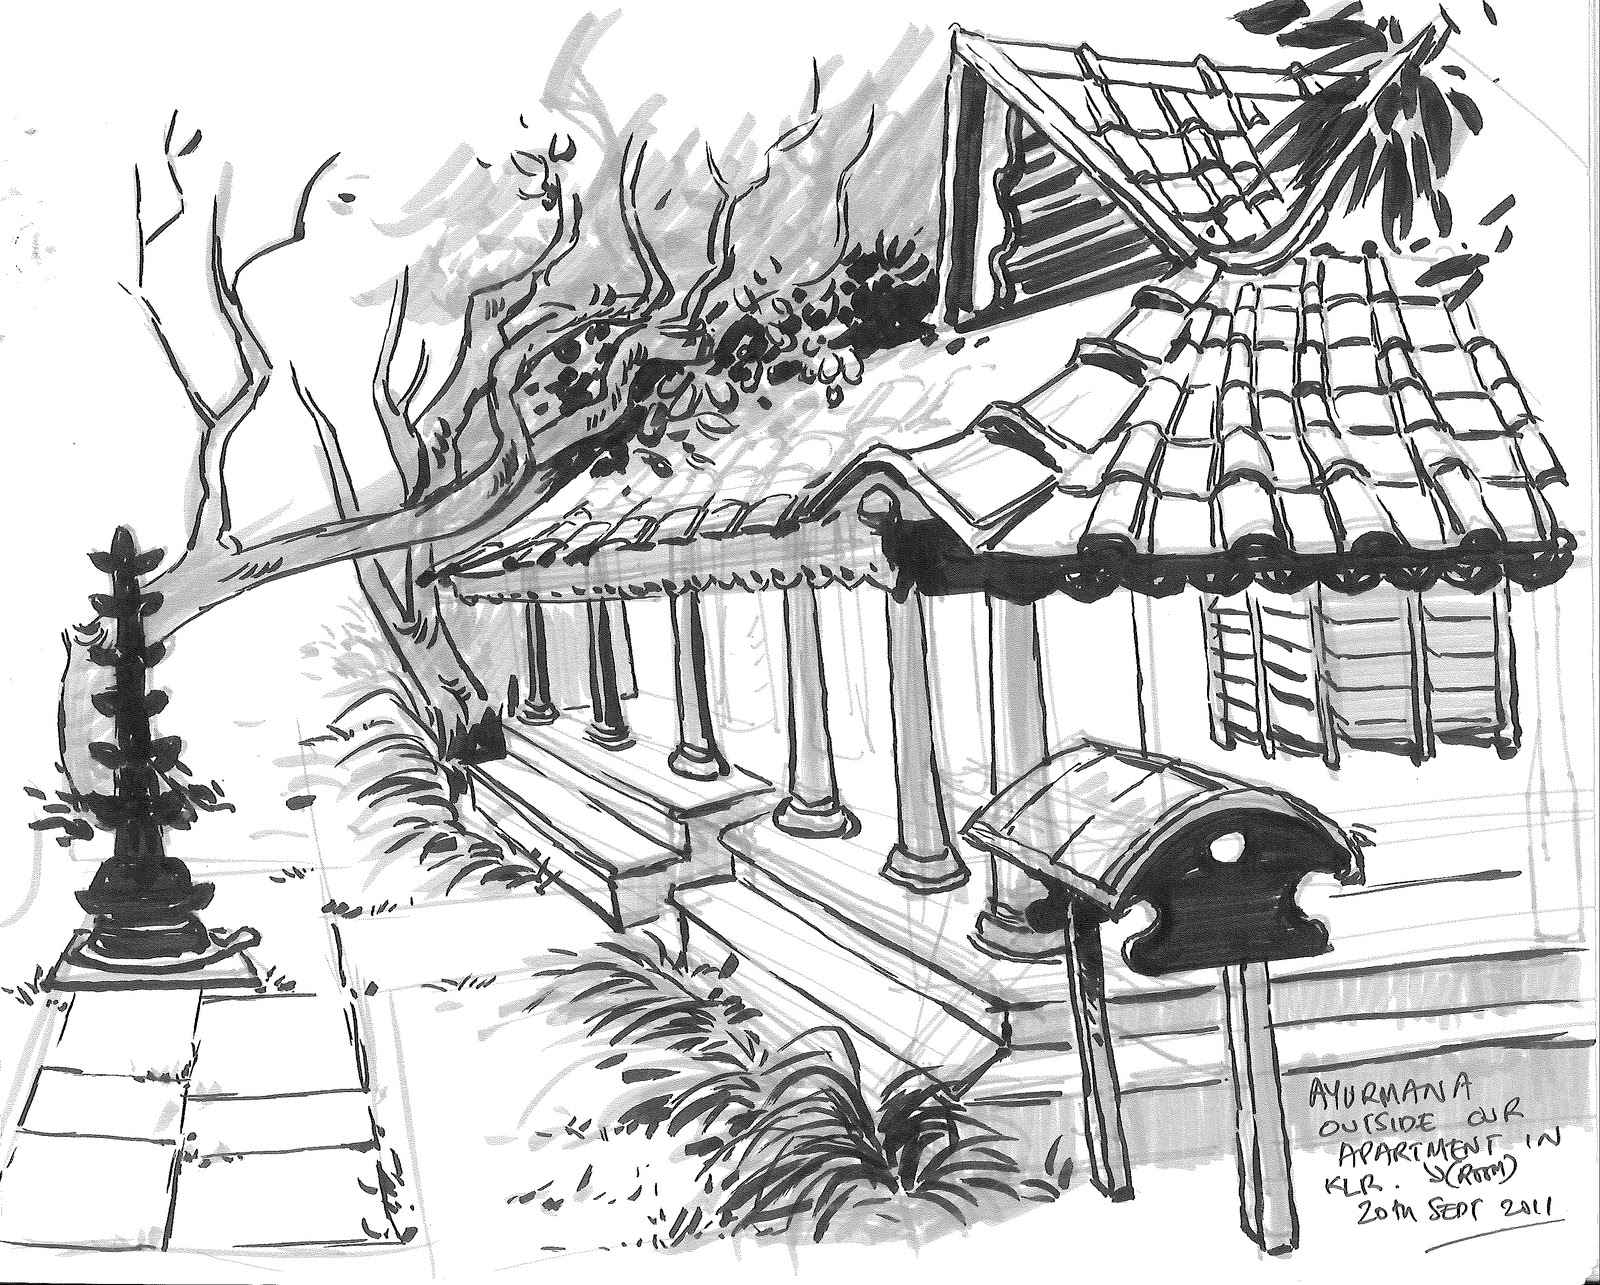 Drawn And Painted Sketches From Kerala